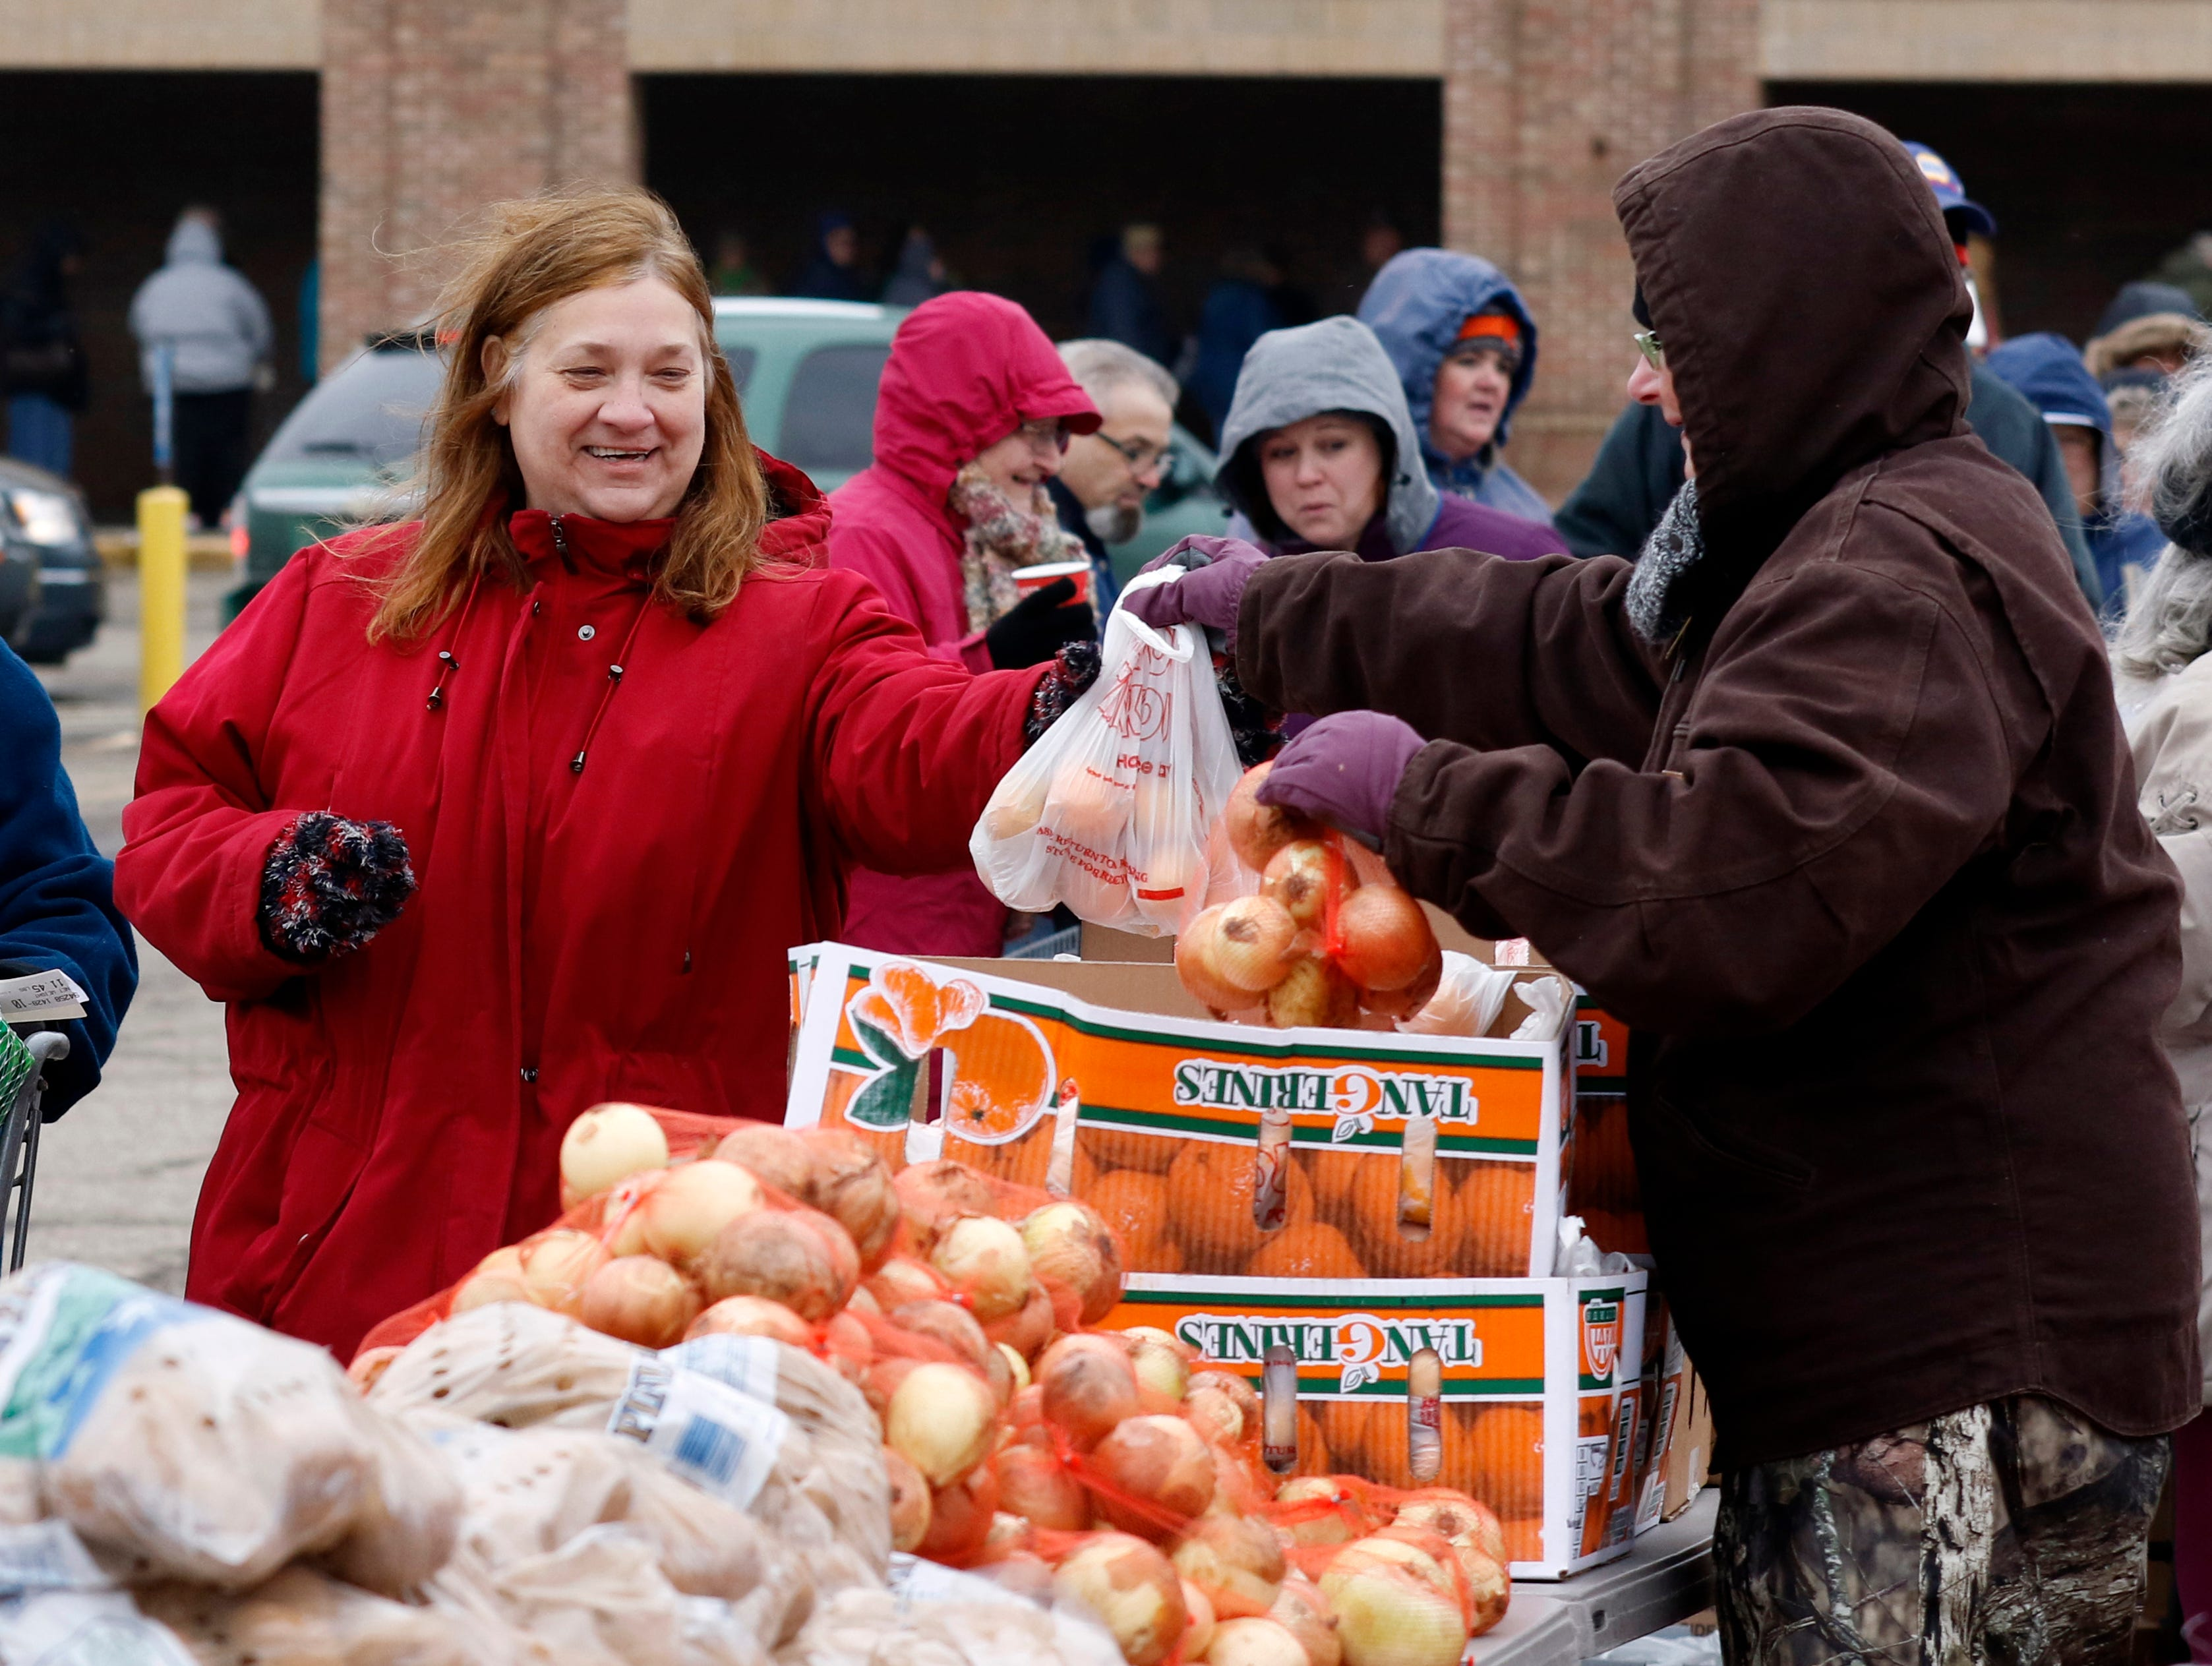 Theresa Johnson, left, accepts a bag of apples from Sally Grimm Thursday, Nov. 16, 2018, as Johnson goes through the line to receive the items to prepare a Thanksgiving dinner on East Main Street in Lancaster. Johnson was one of about 500 Lutheran Social Services Food Pantry clients to receive a Thanksgiving meal Friday.